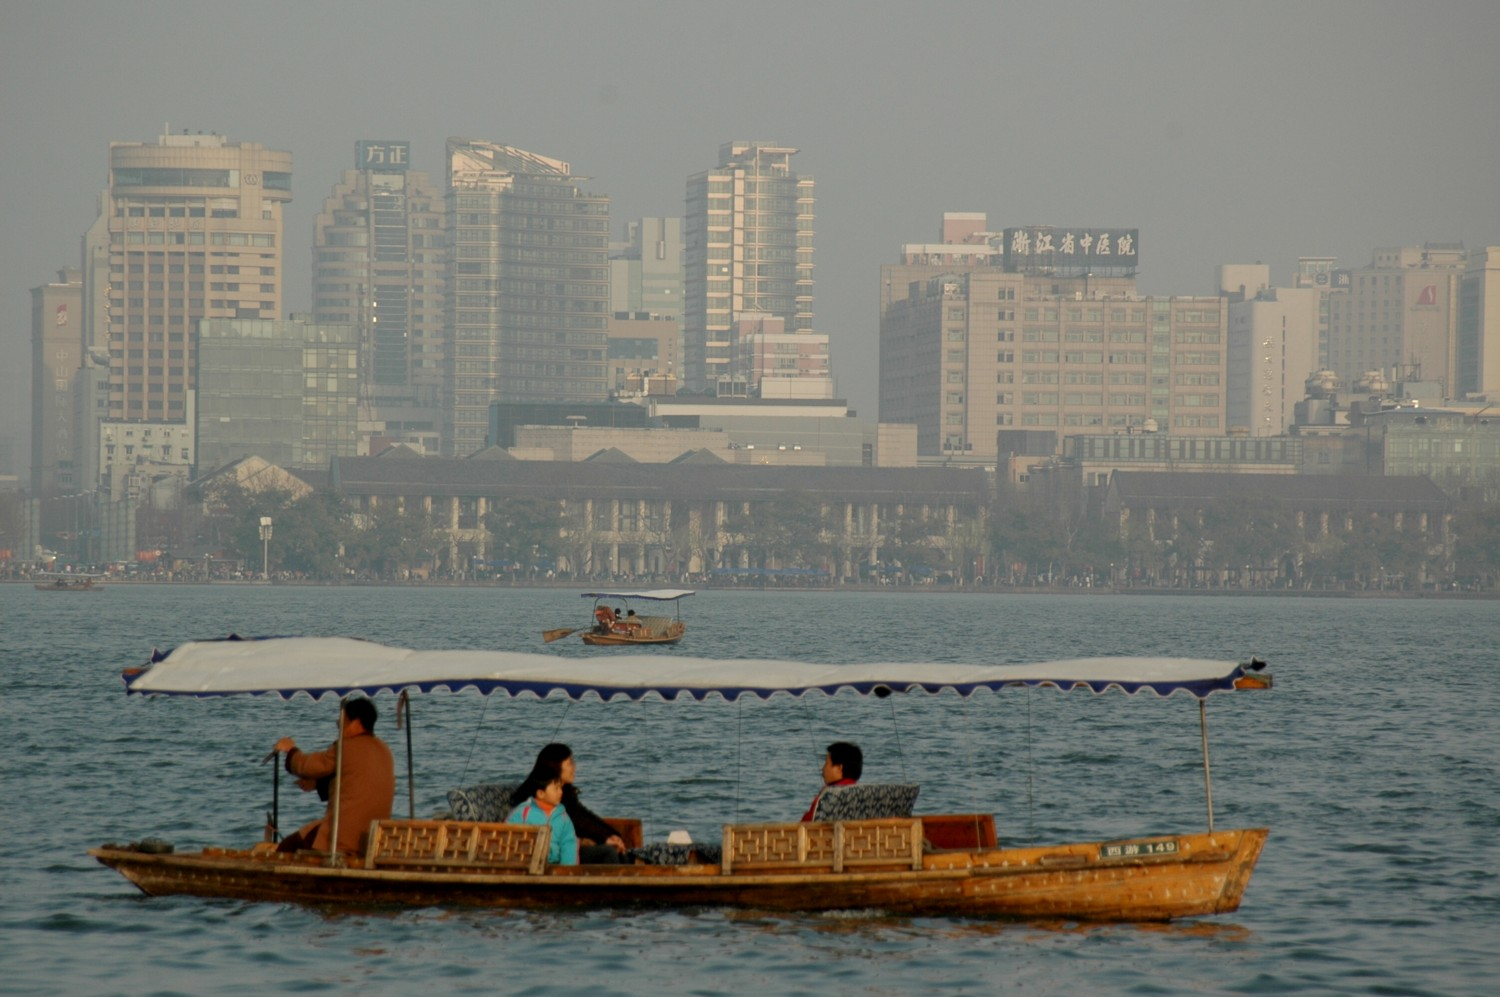 Traditional wooden boats on West Lake against the backdrop of Hangzhou's modern skyline © 2016 Karen Rubin/goingplacesfarandnear.com